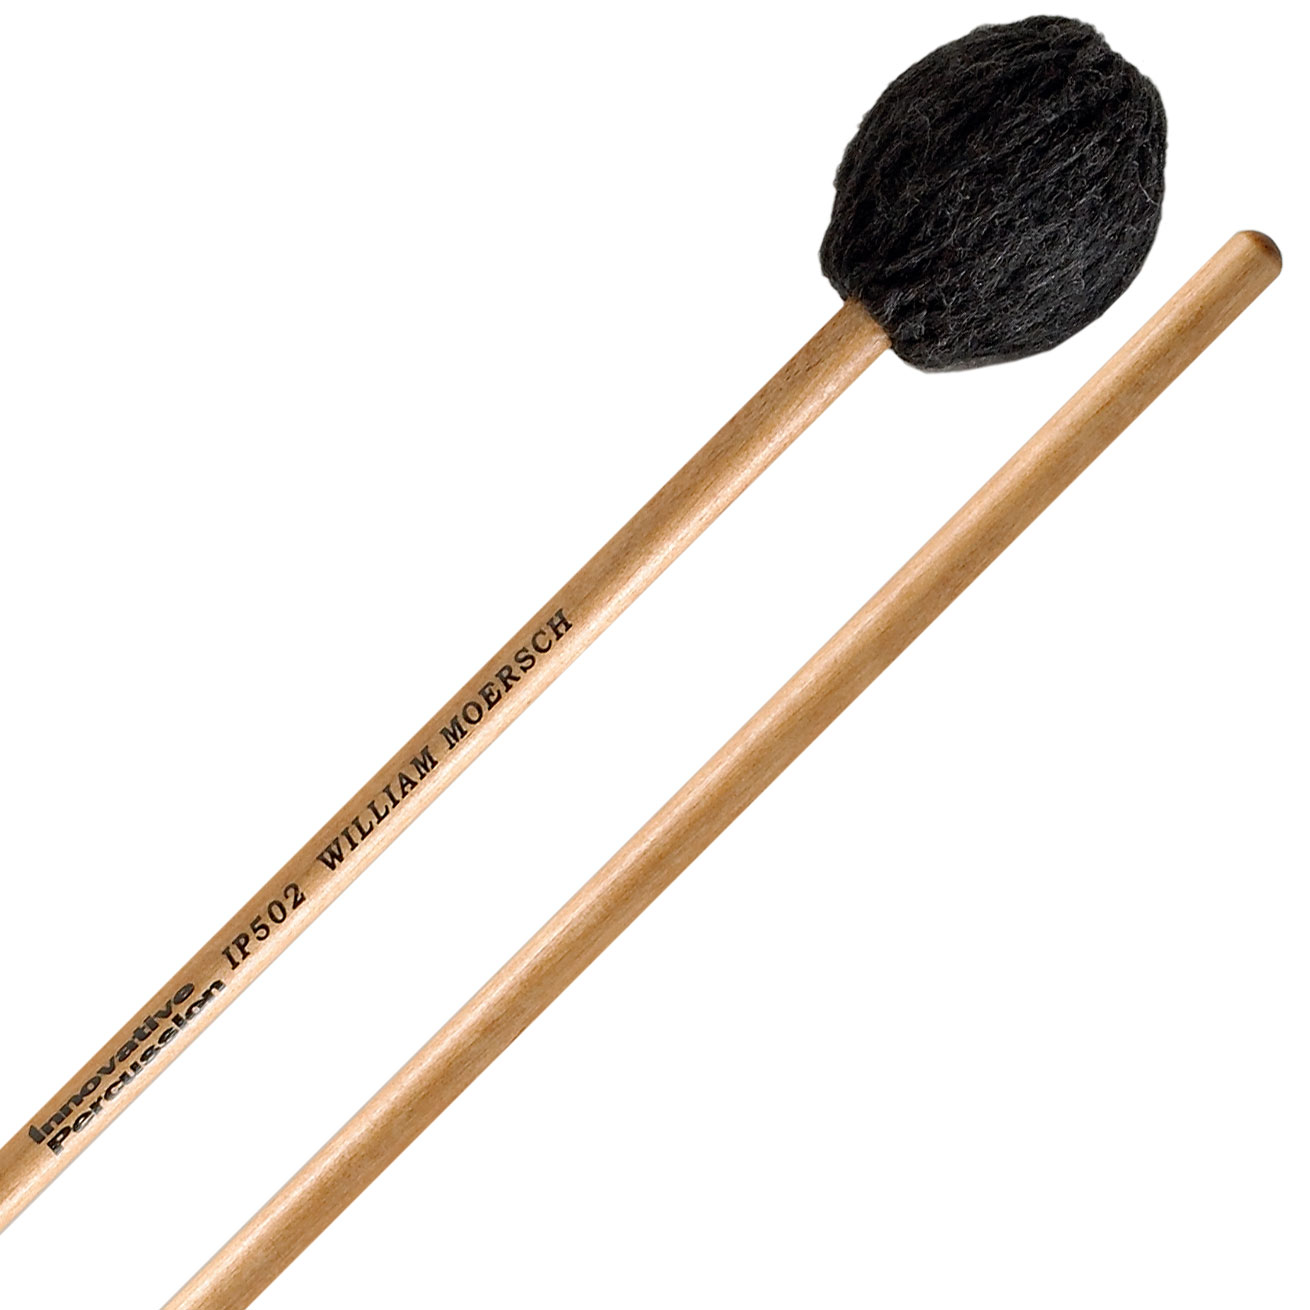 Innovative Percussion William Moersch Signature Medium Soft Marimba Mallets